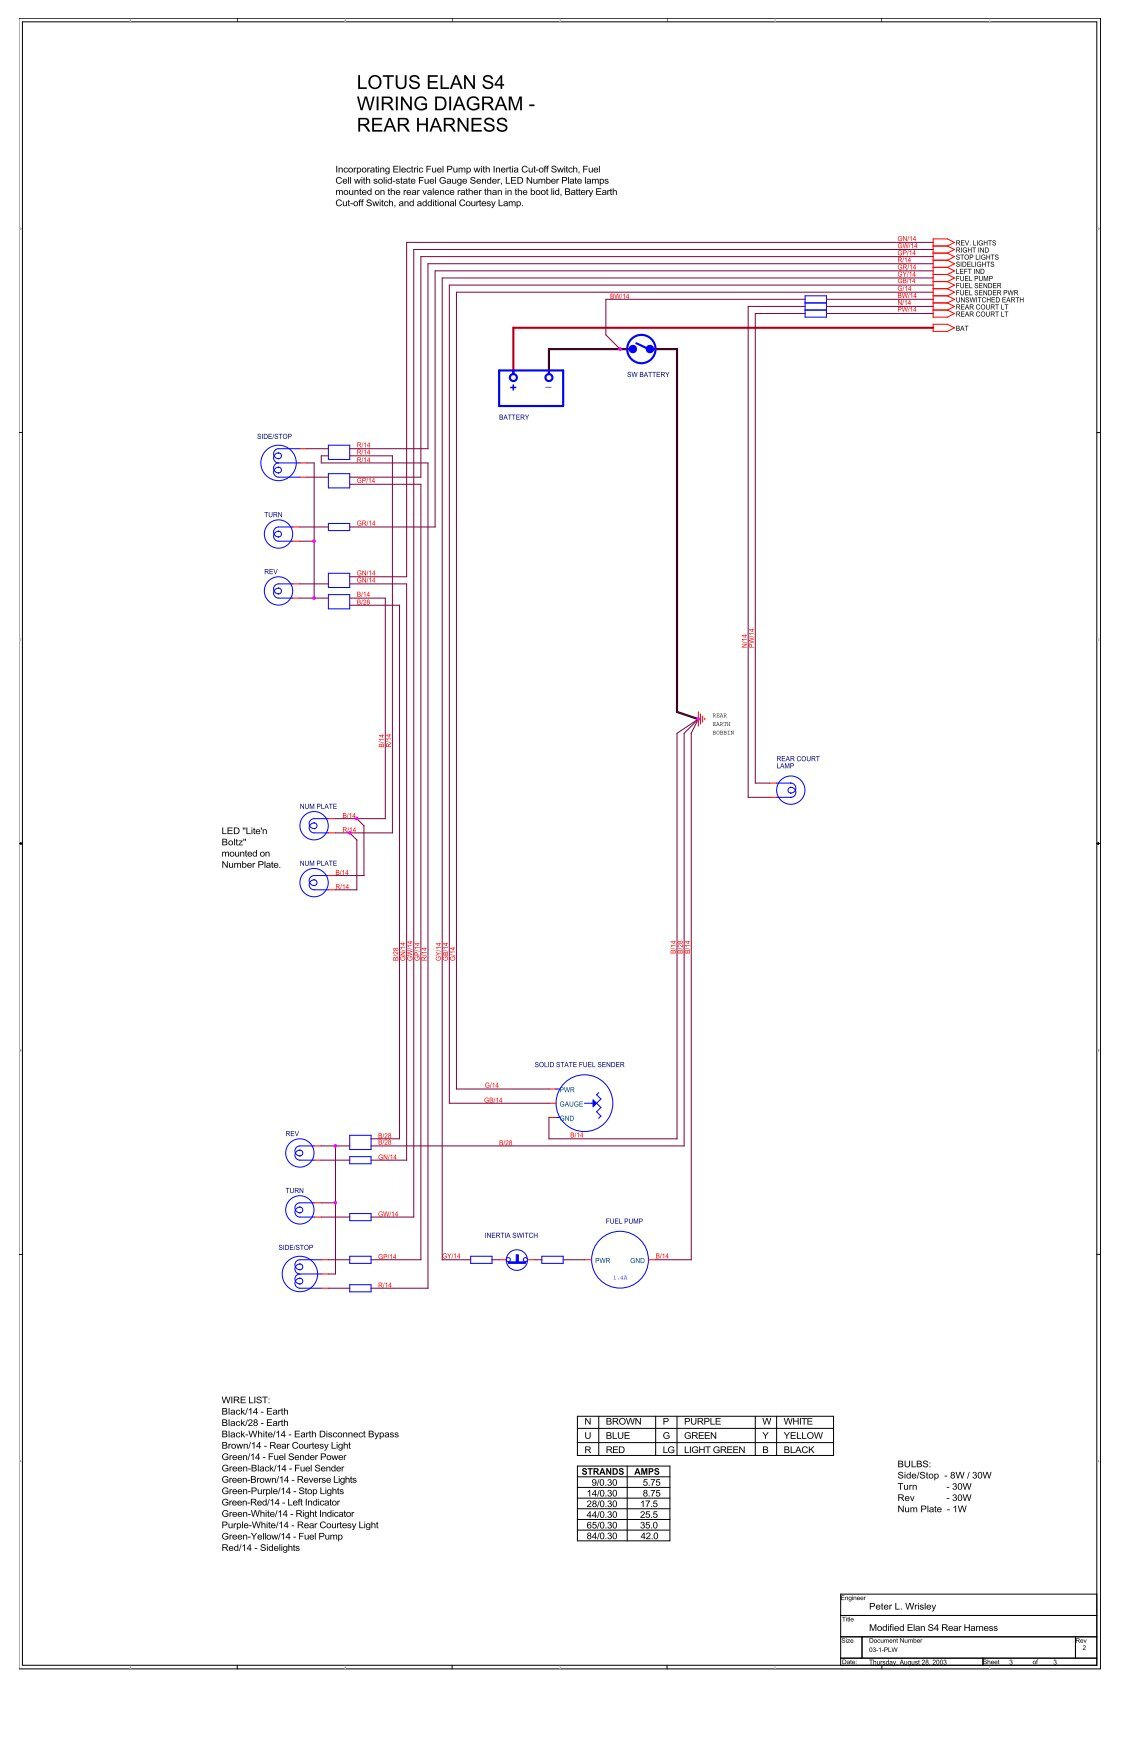 lotus elan s4 wiring diagram rear harness lotus elan net?quality\=85 ezgo 48 volt gauge wiring diagram 48 volt golf cart battery volt gauge wiring diagram at webbmarketing.co